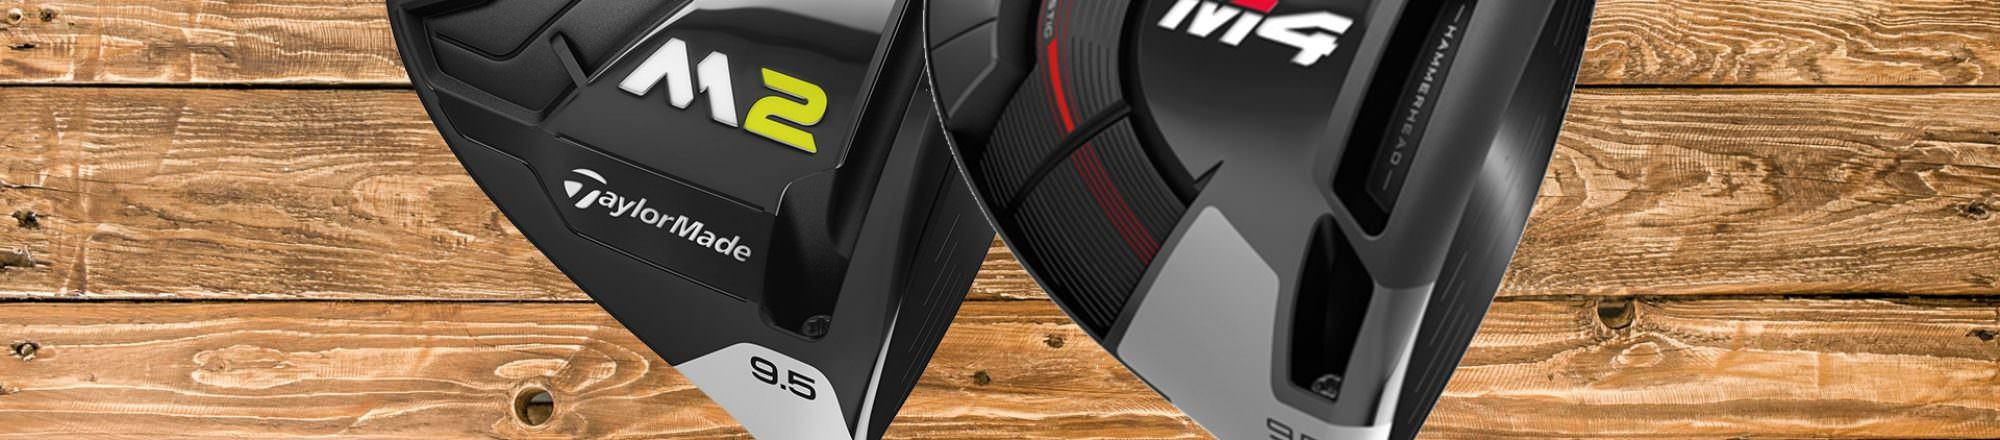 How did the TaylorMade M4 fare against the M2?